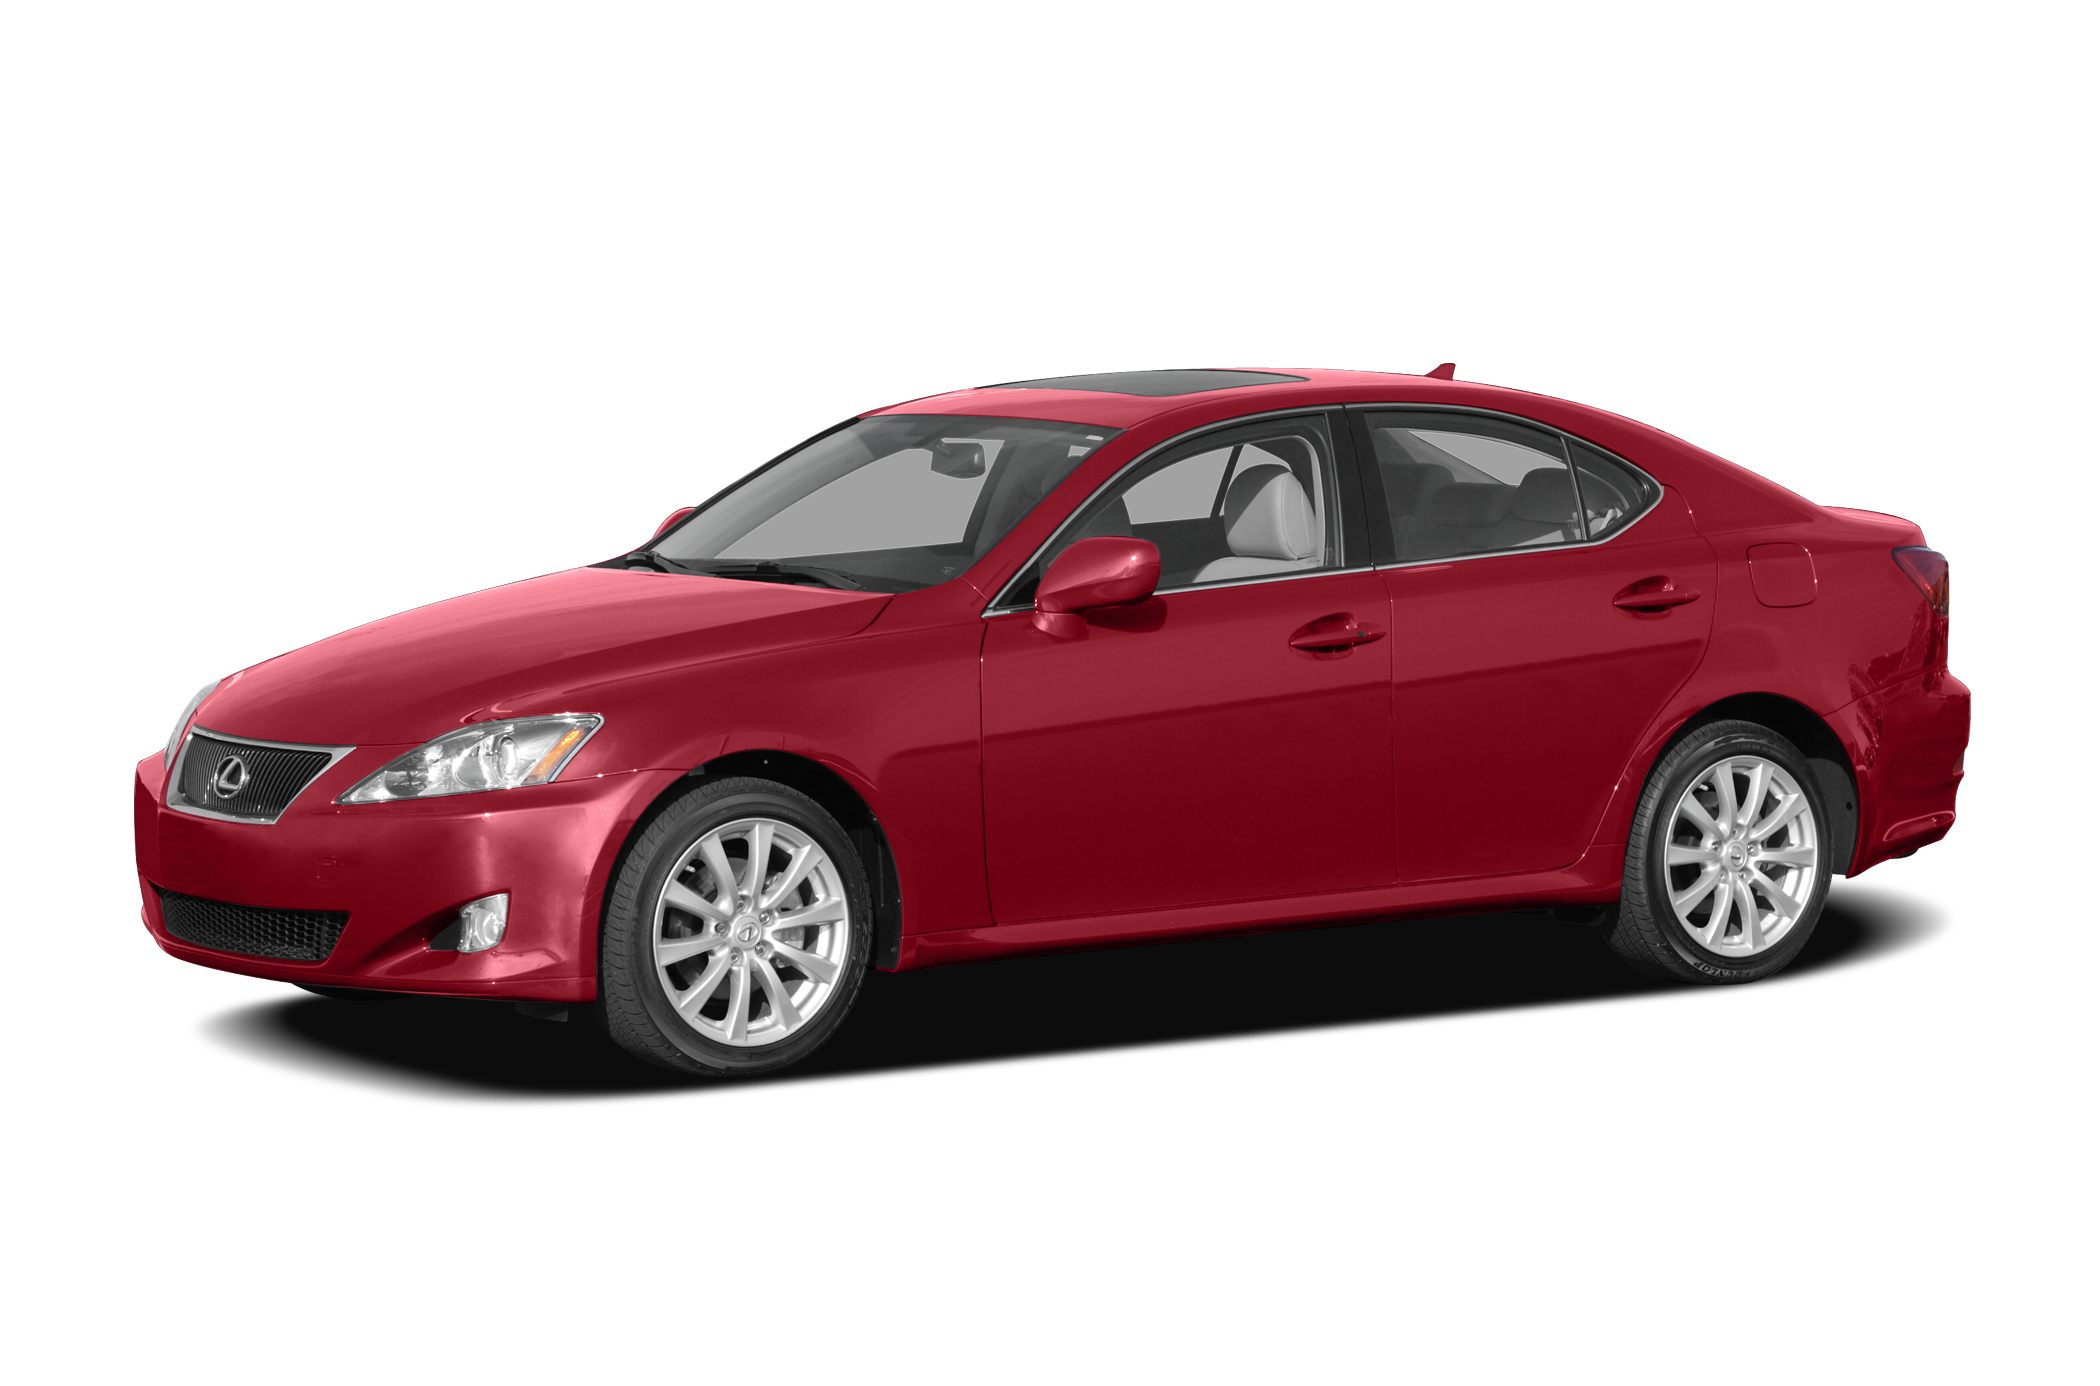 2008 Lexus IS 250 Base OUR PRICESYoure probably wondering why our prices are so much lower than